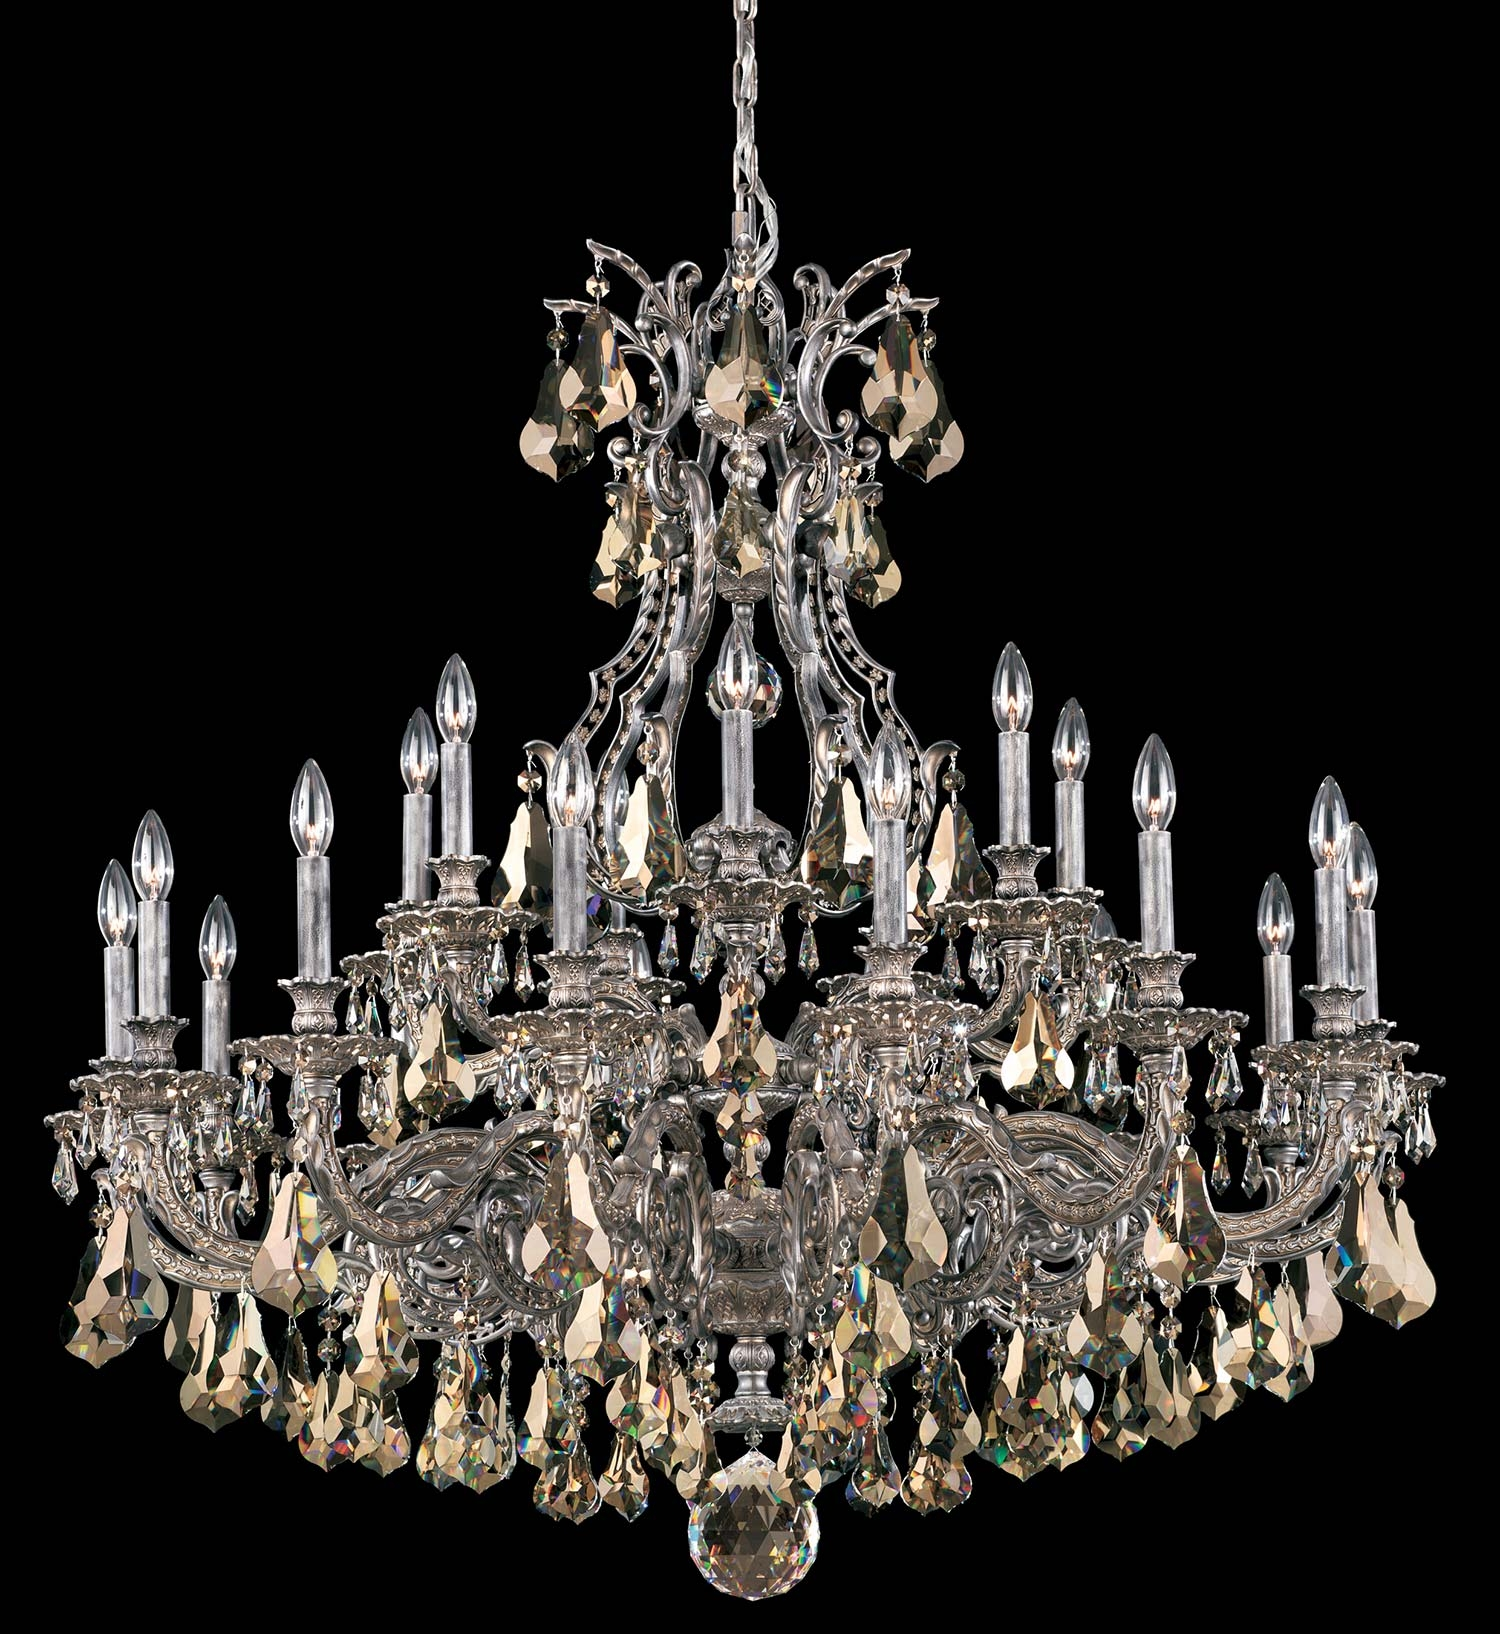 Schonbek 6961 Sophia Collection Chandelier Crystal Traditional Crystal Pertaining To Traditional Crystal Chandeliers (Image 9 of 15)